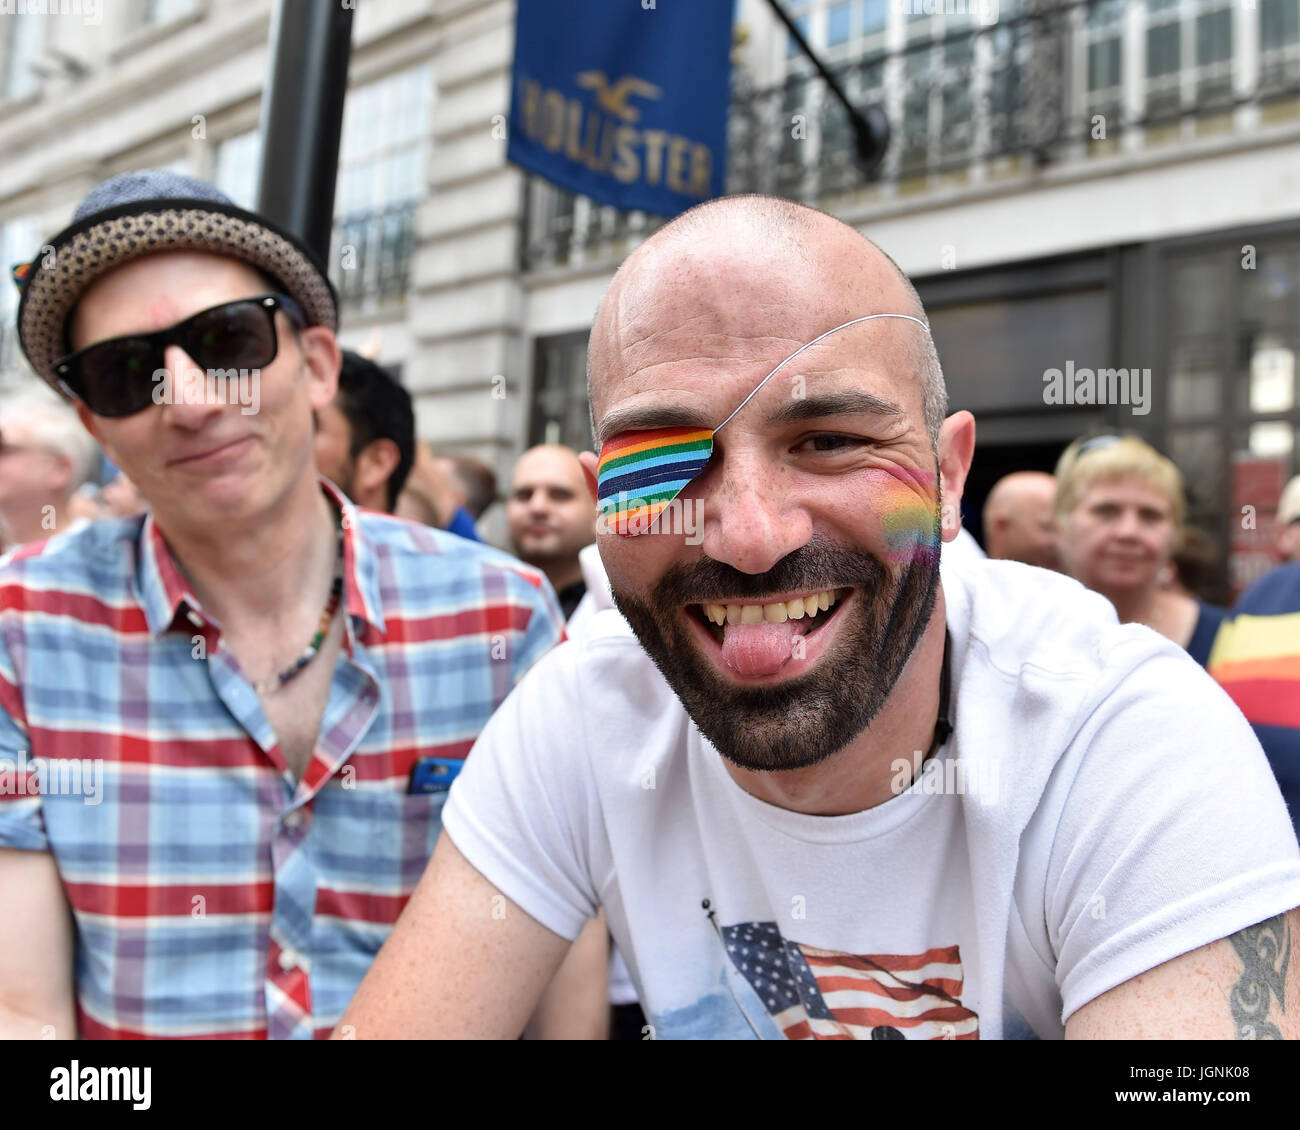 London, UK. 08th July, 2017. A spectator during Pride In London on Saturday. Photo : Taka G Wu Credit: Taka Wu/Alamy - Stock Image